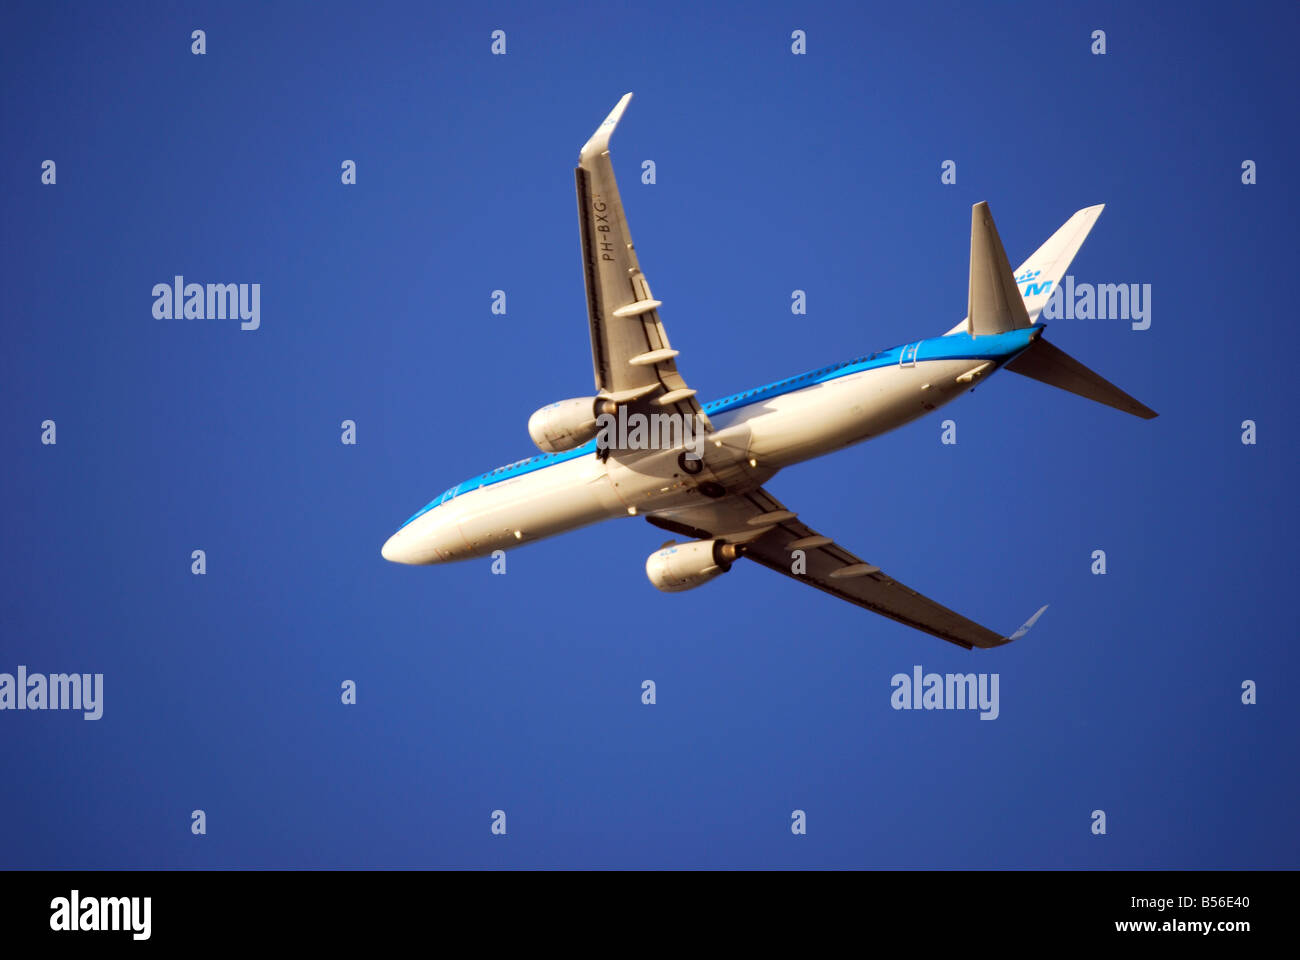 KLM Boeing 737-800 aircraft taking off, Heathrow Airport, Greater London, England, United Kingdom - Stock Image